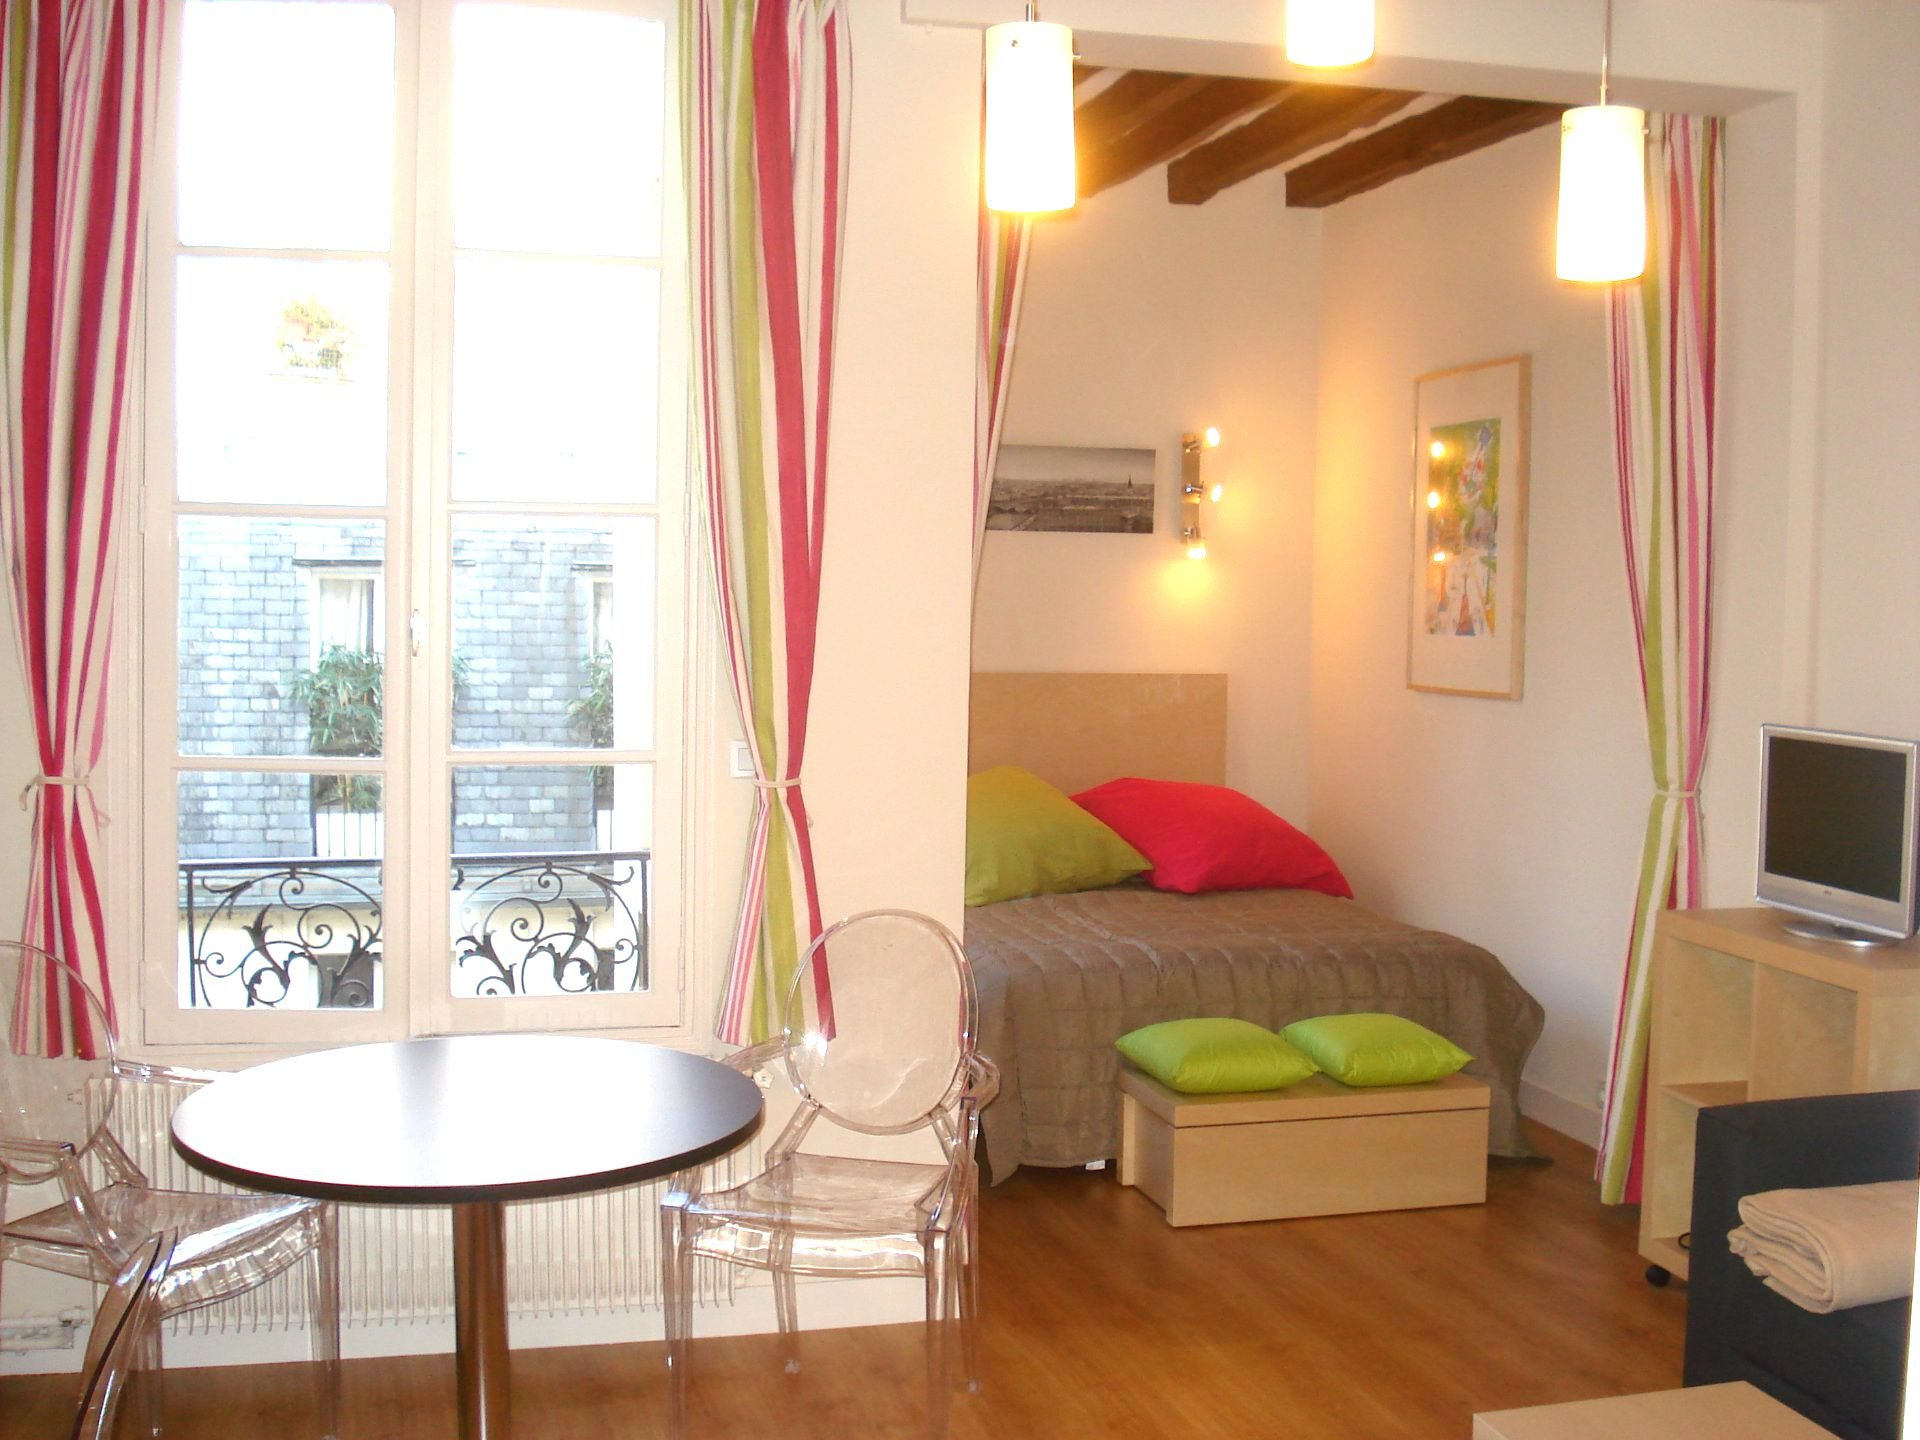 PARIS 75007- Rue de Verneuil - Grand studio -31m2